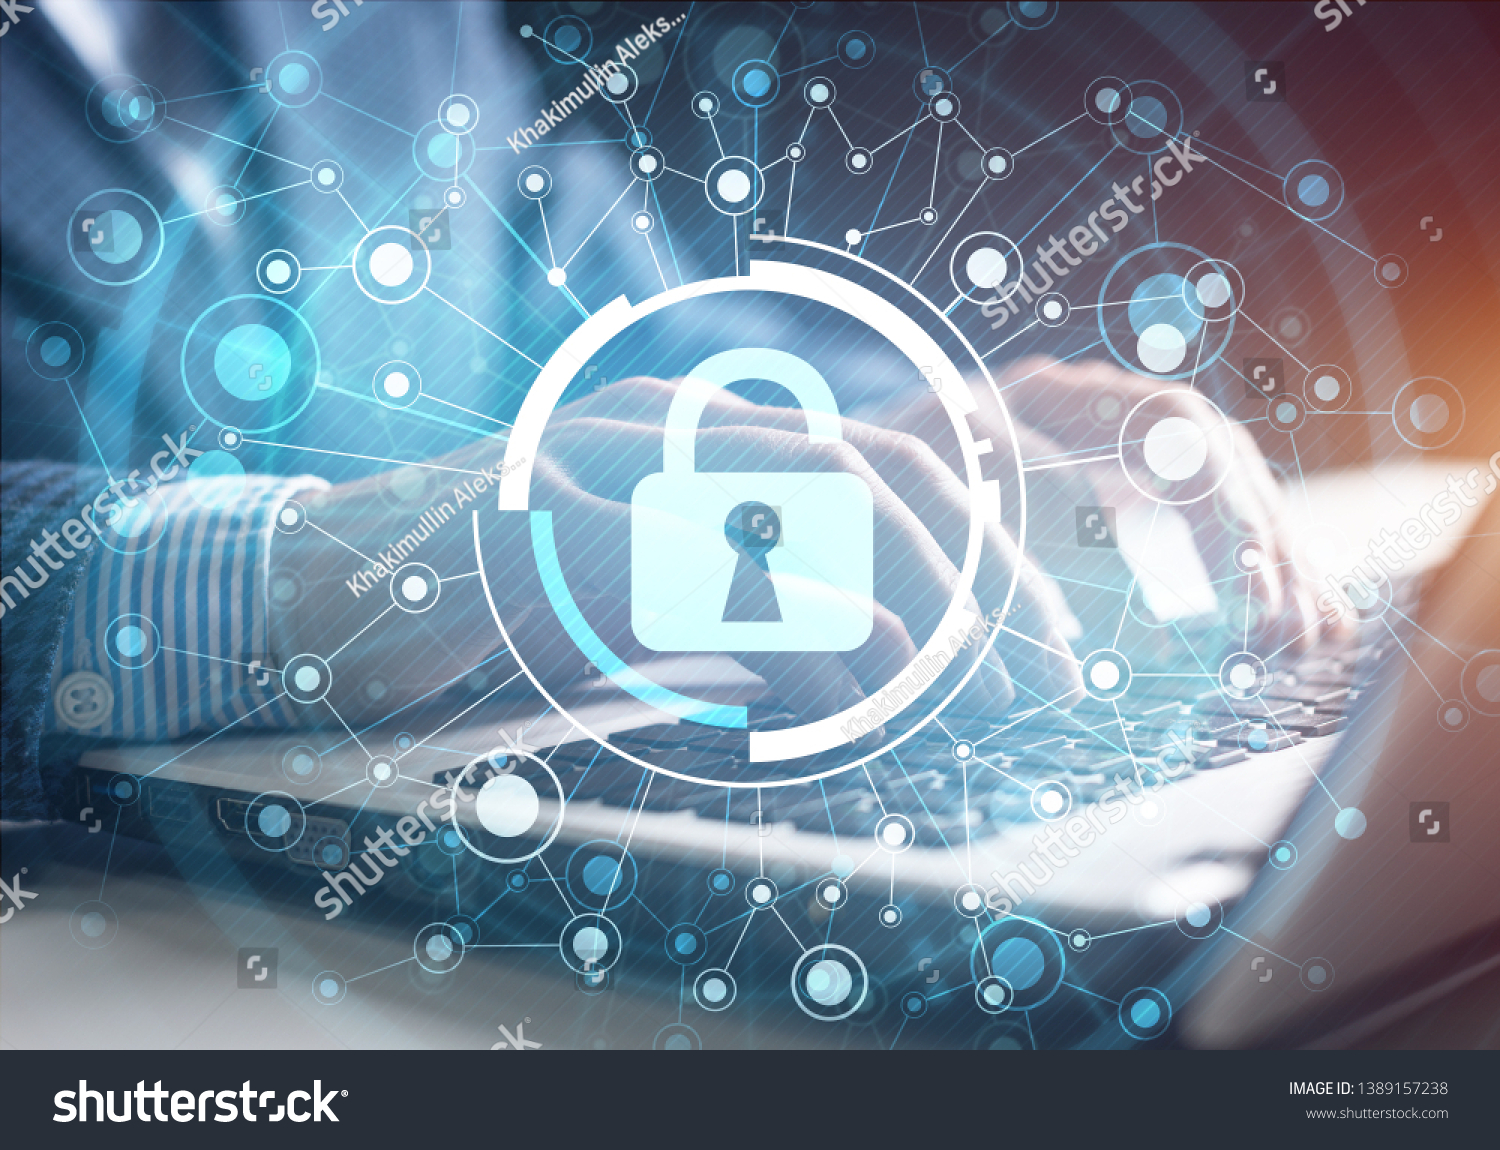 What Is Cybersecurity And Why You Need To Learn It